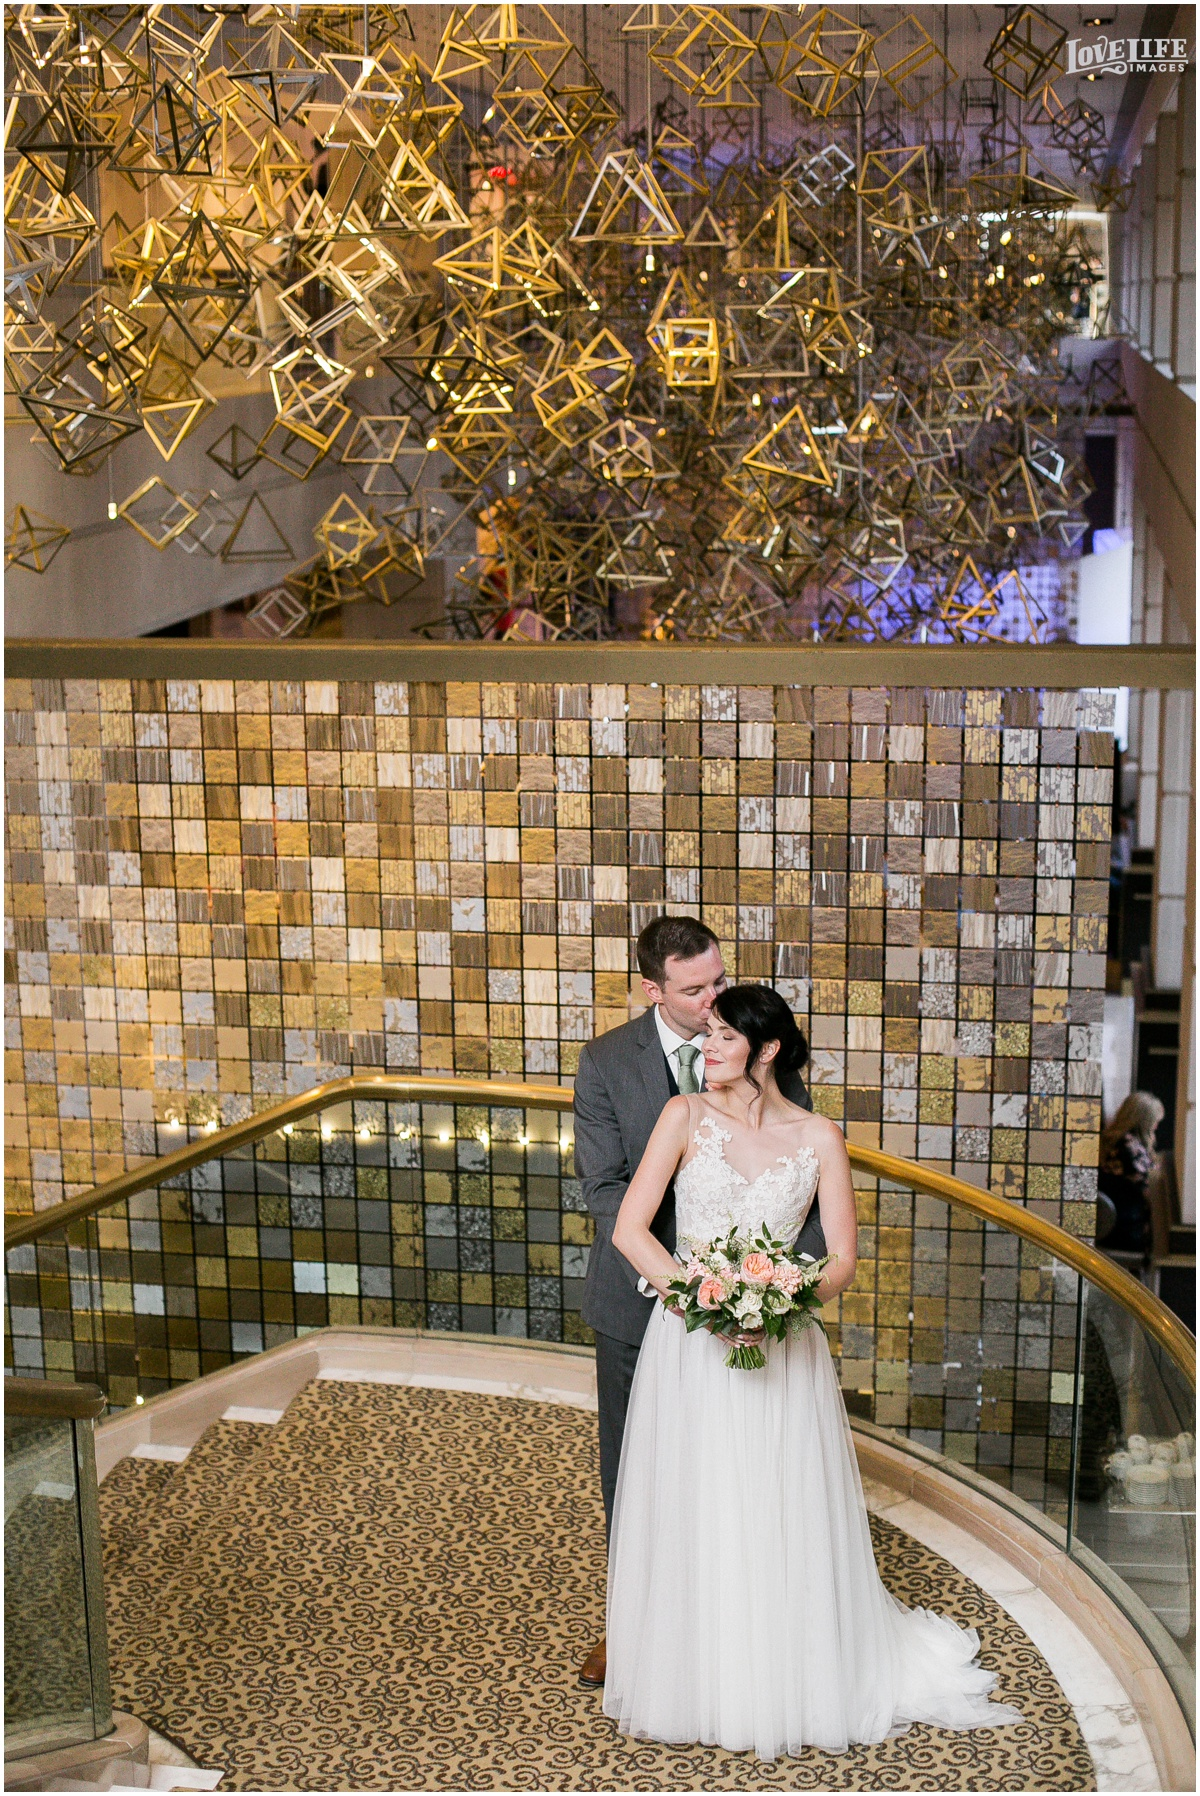 Fairmont DC Wedding portrait with sculpture.jpg